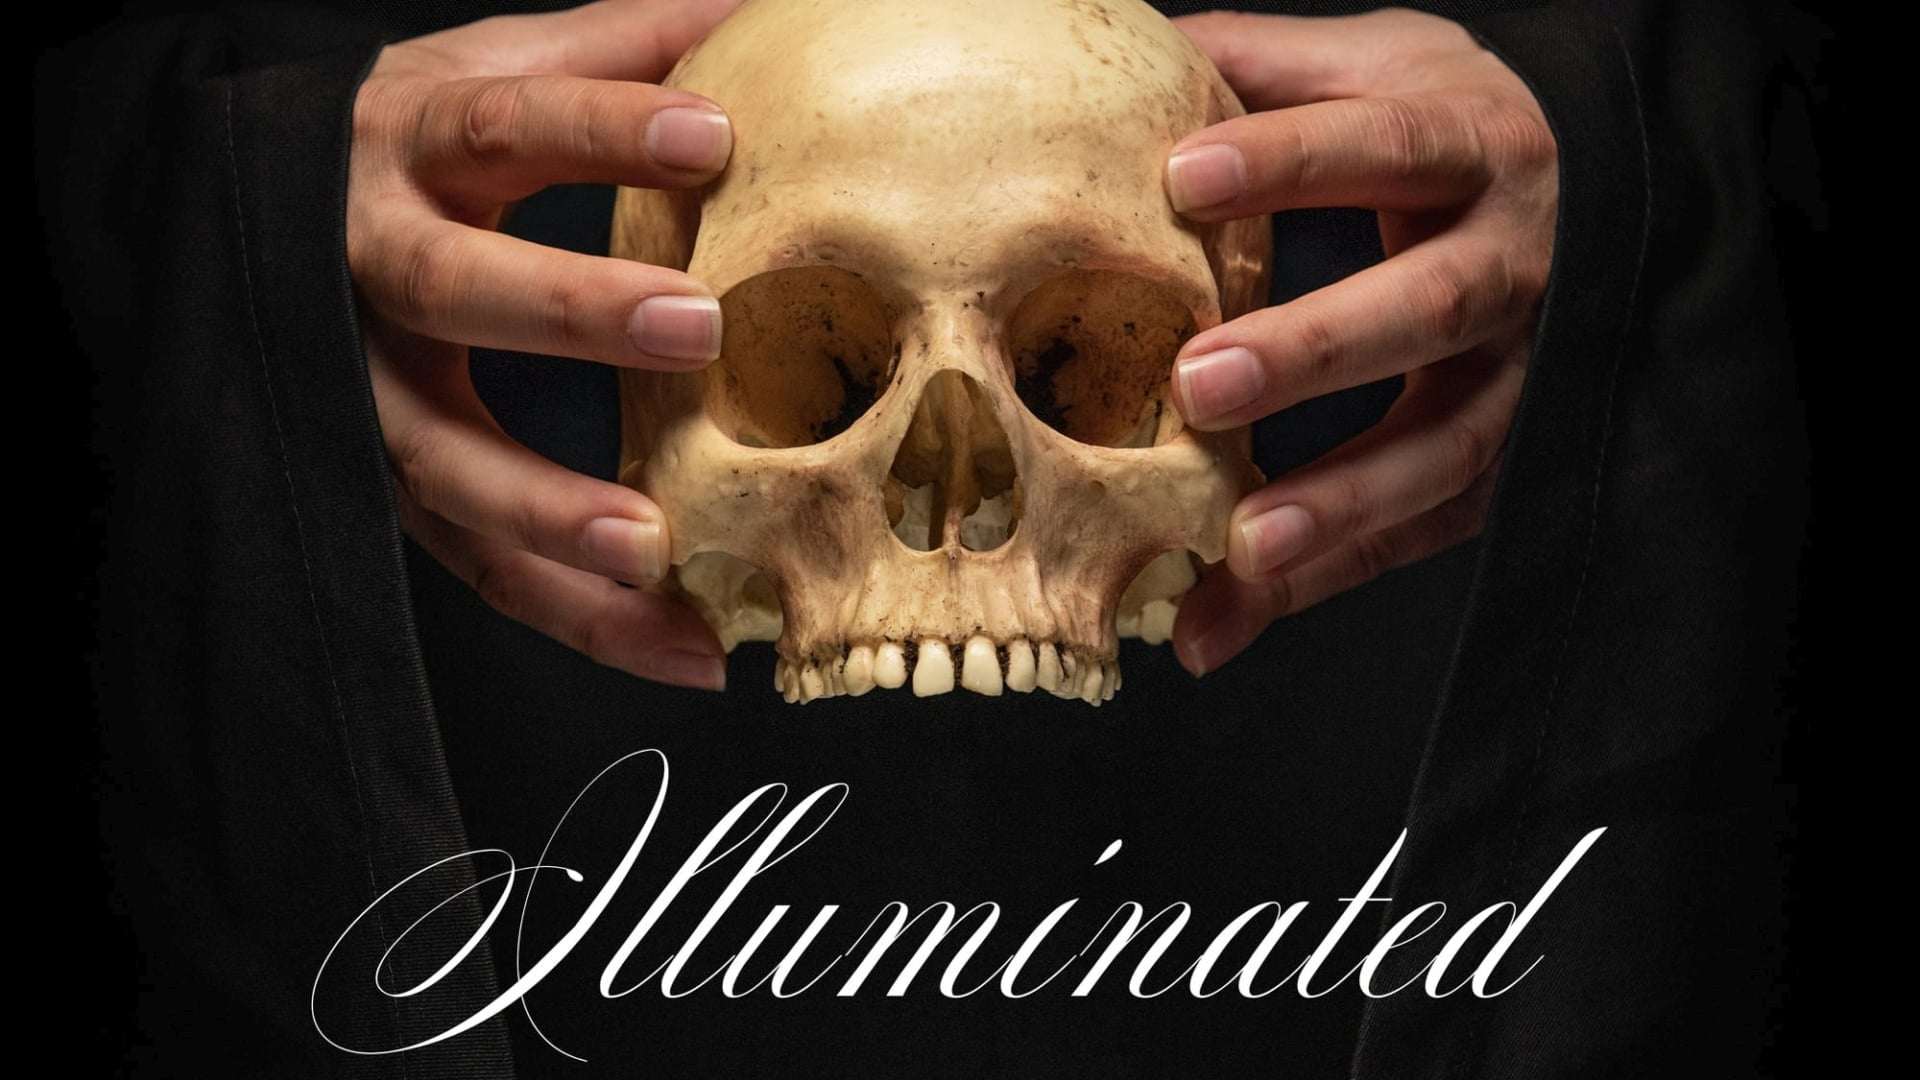 Illuminated: The True Story of the Illuminati